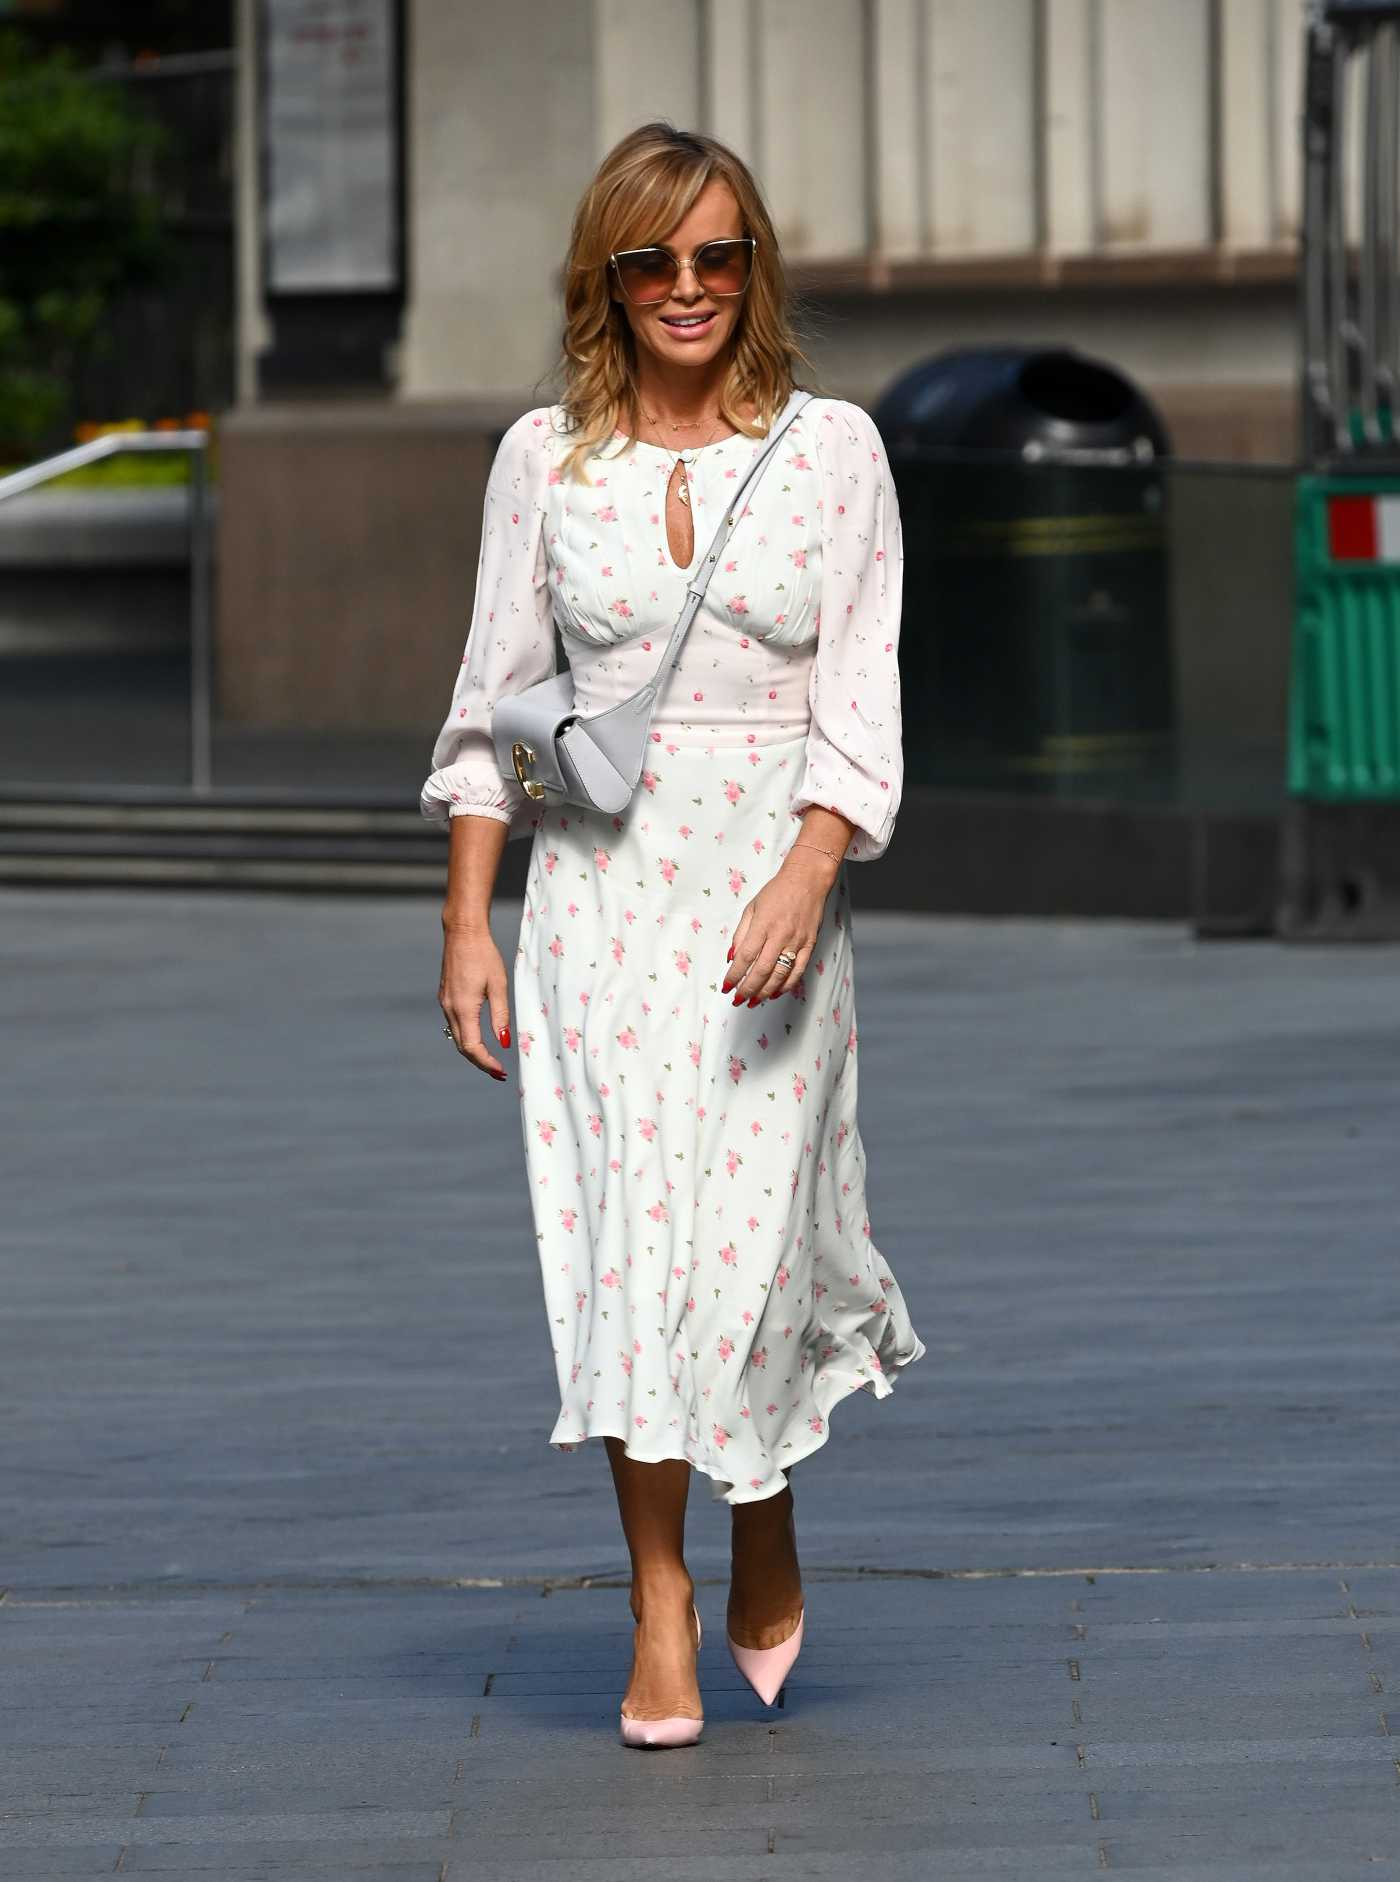 Amanda Holden in a White Floral Dress Leaves the Global Radio in London 07/17/2020